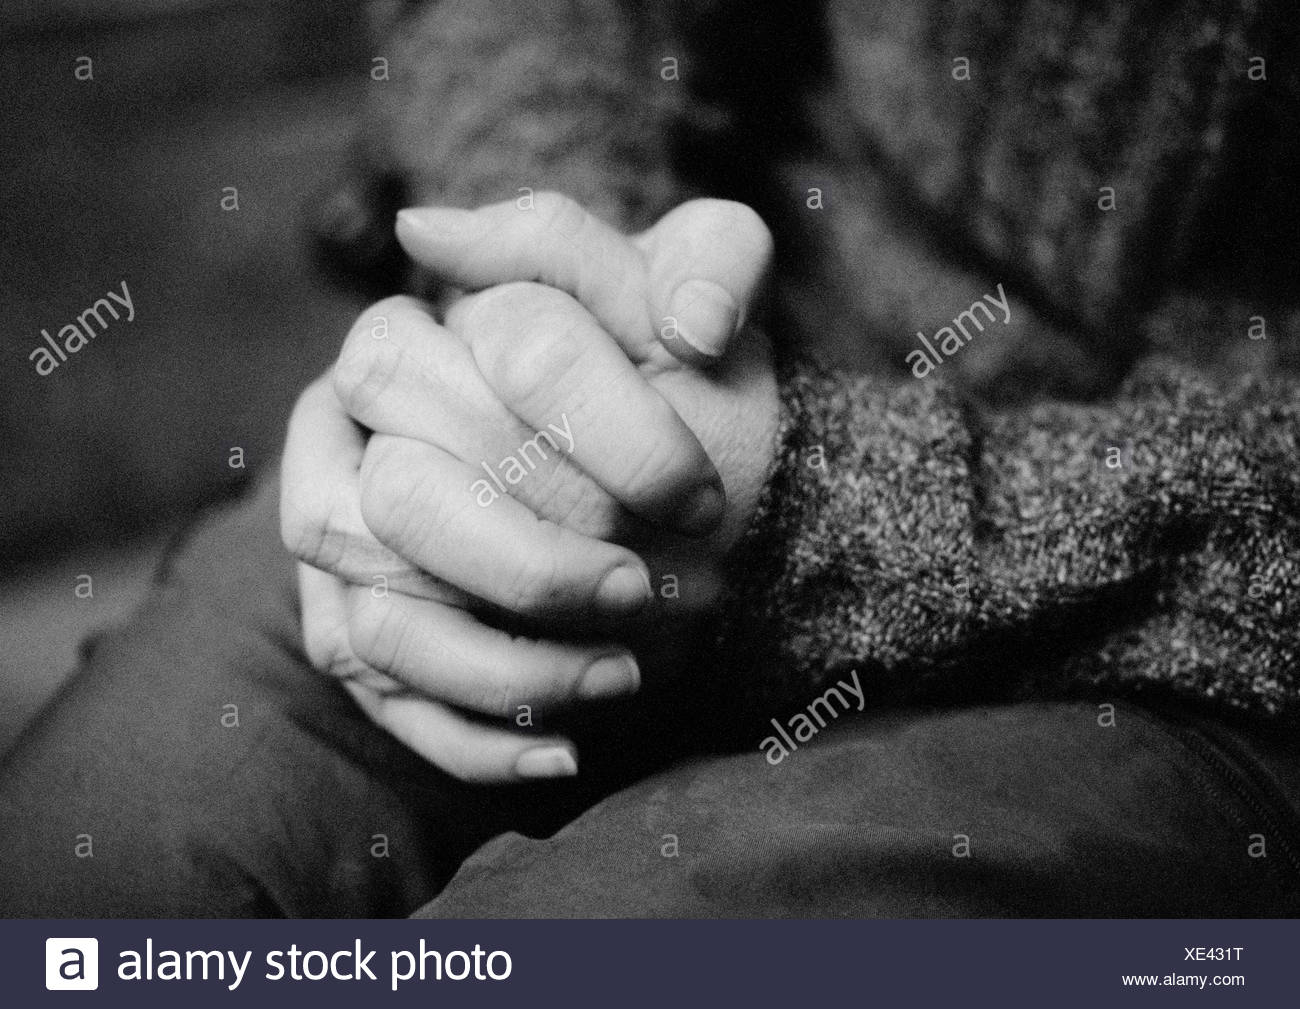 Clasped hands, close-up, b&w - Stock Image